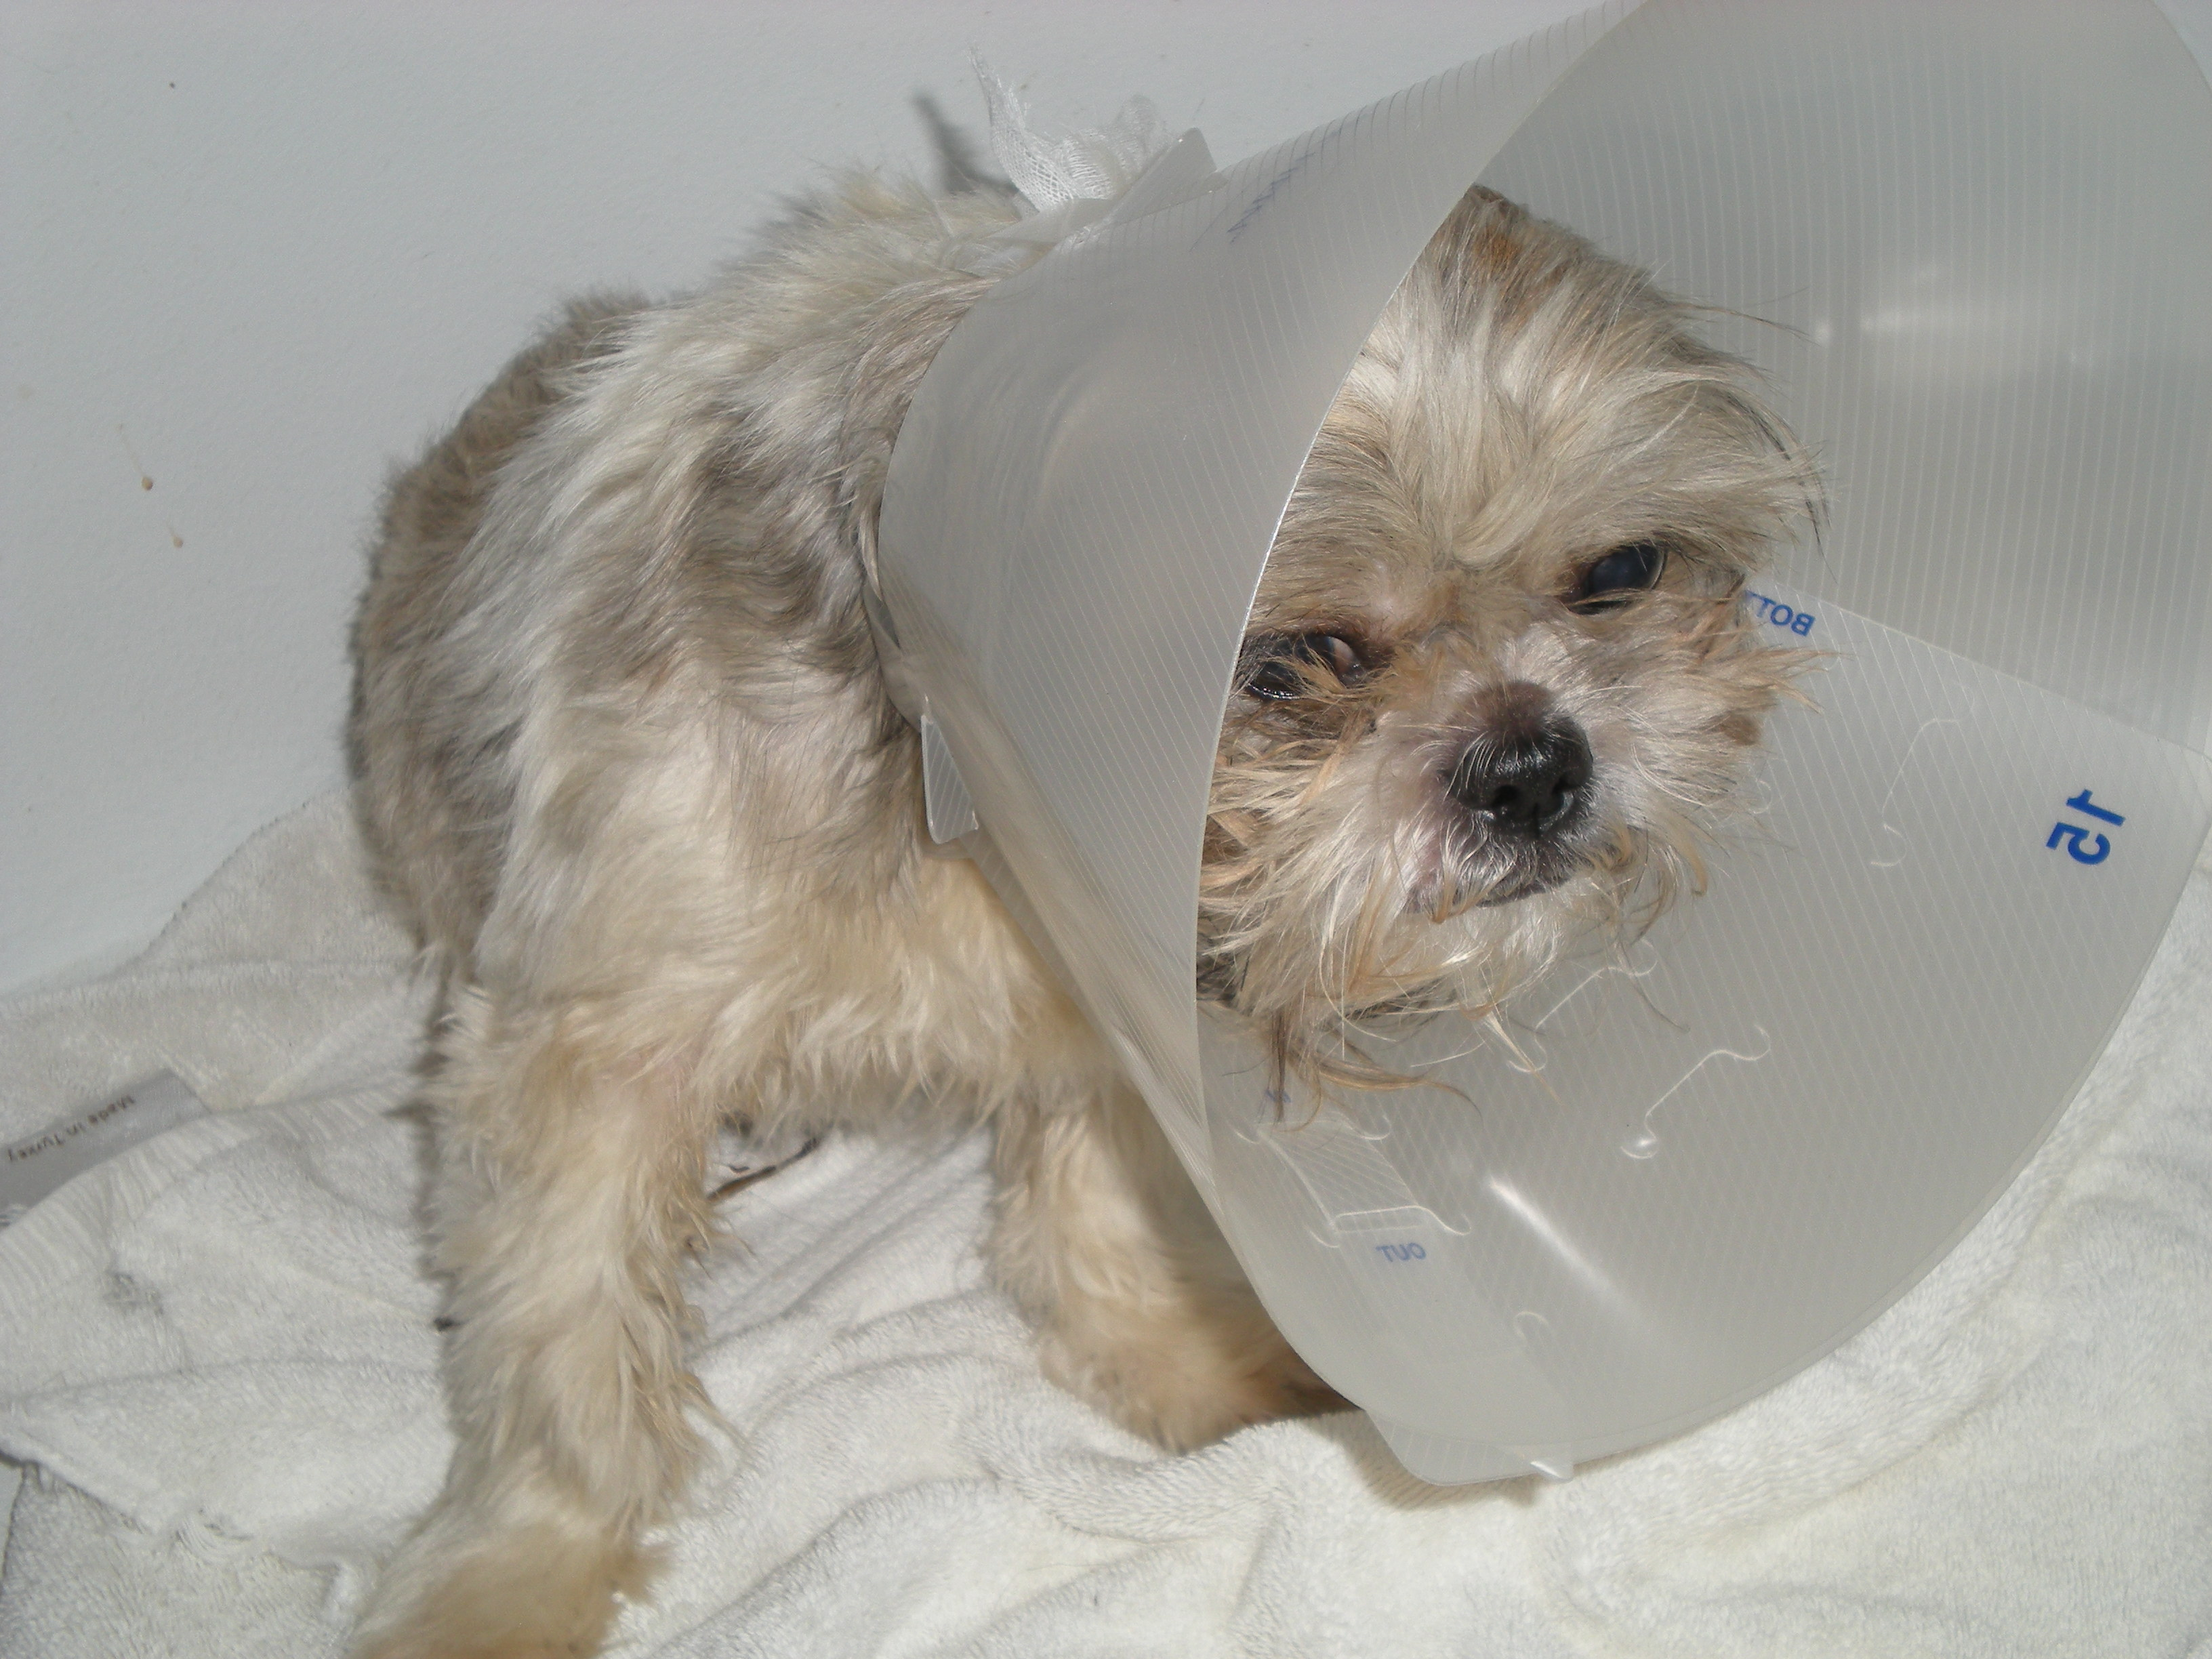 Poor Little Peanut at the vets. 2012